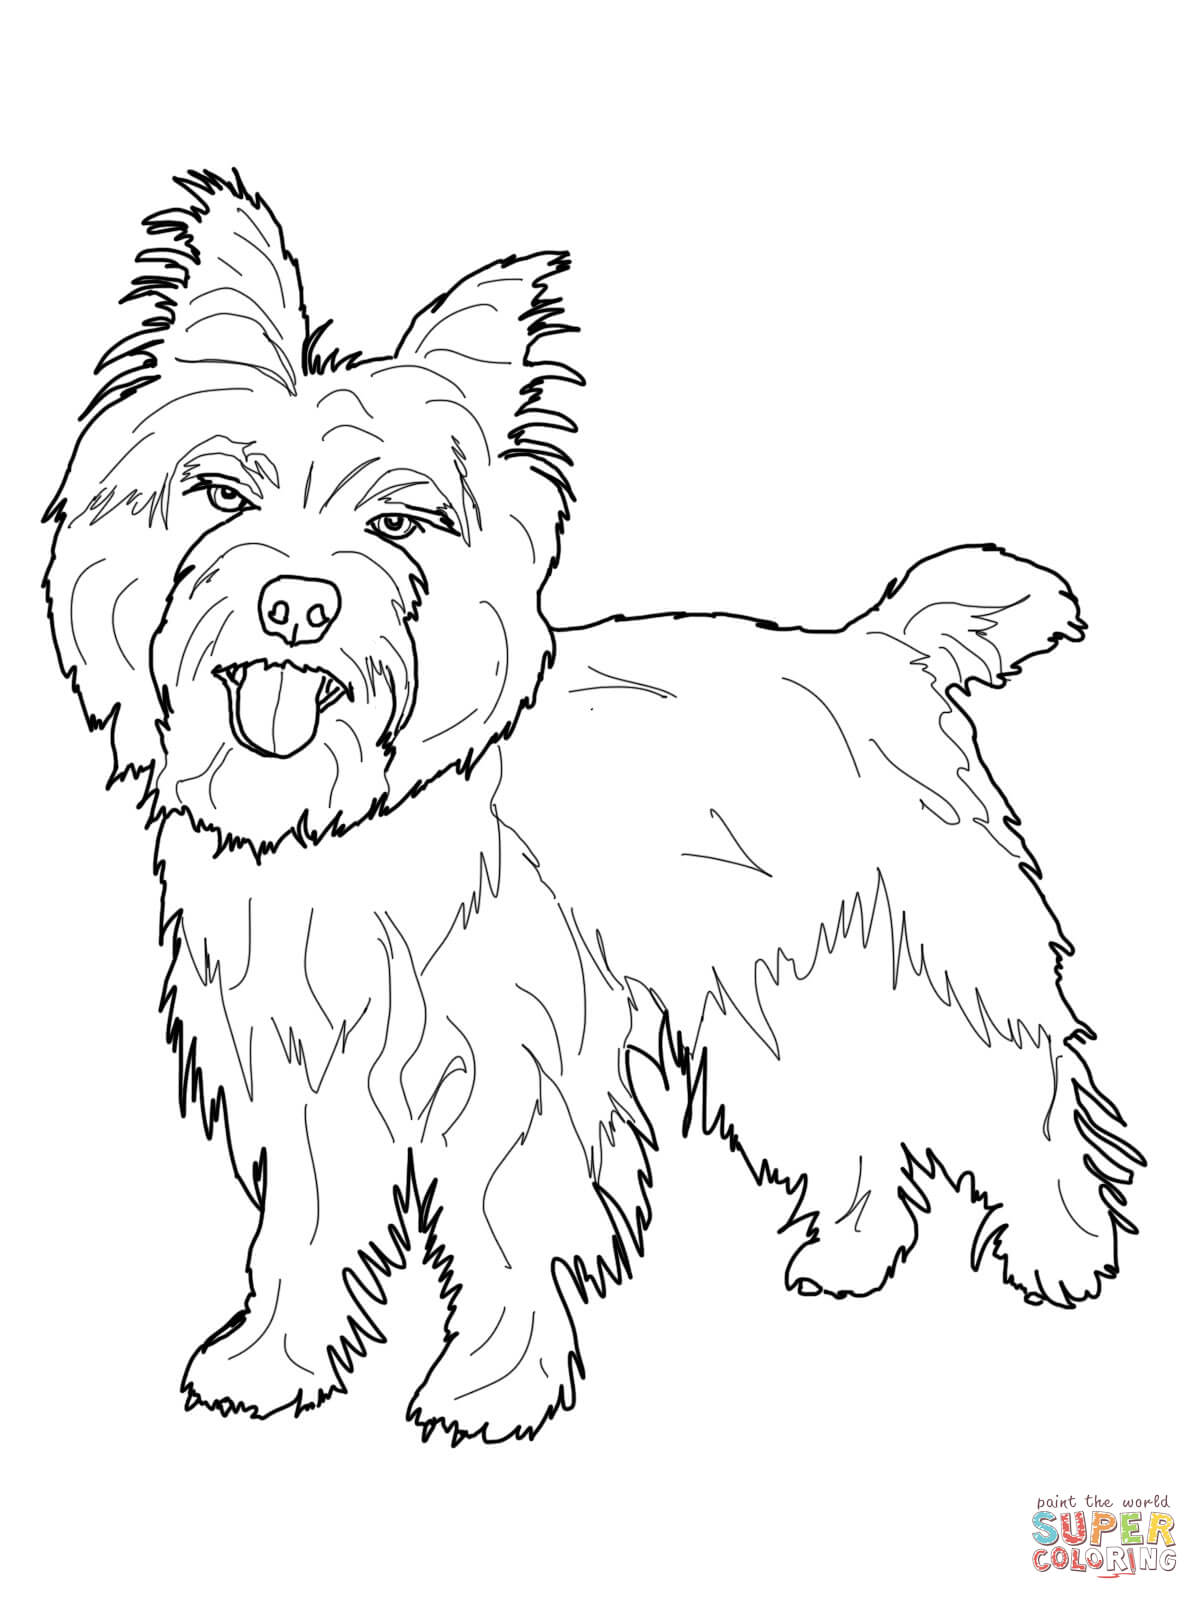 Toto Wizard Of Oz Coloring Pages Coloring Pages